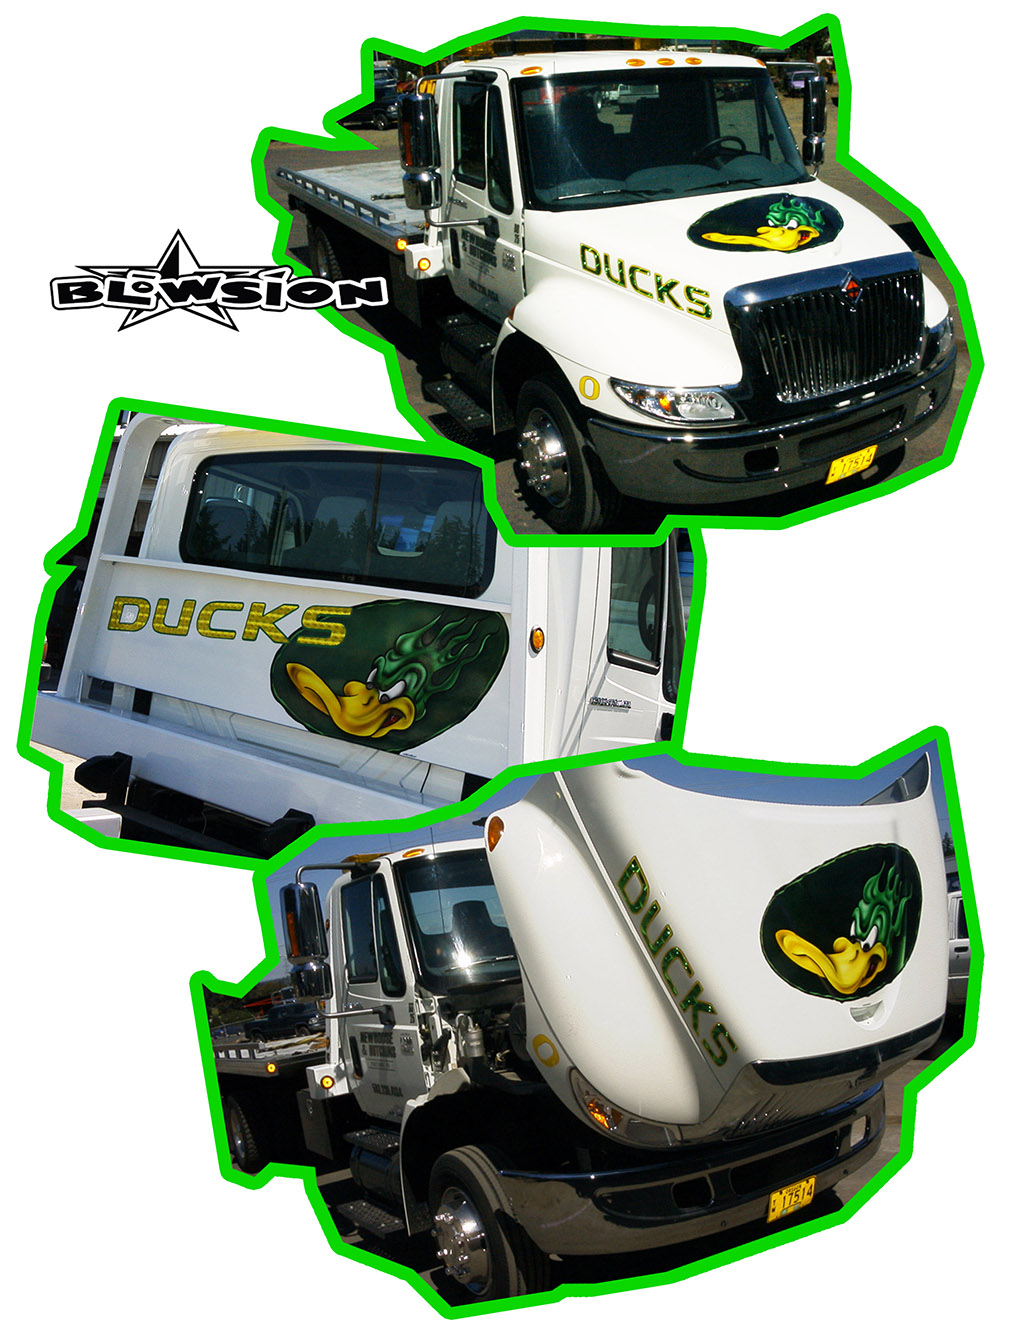 quincy wilson ducks don 39 t pull a truck page 7 volnation. Black Bedroom Furniture Sets. Home Design Ideas